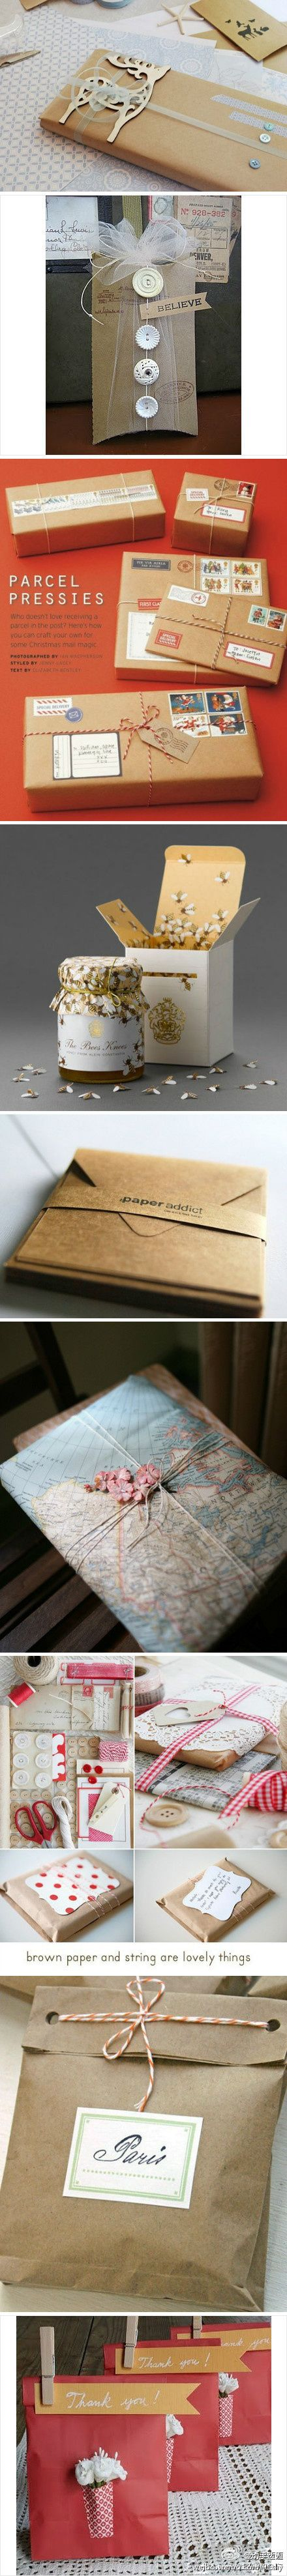 Gift and package wrapping ideas. Love these. (picture inspiration only)